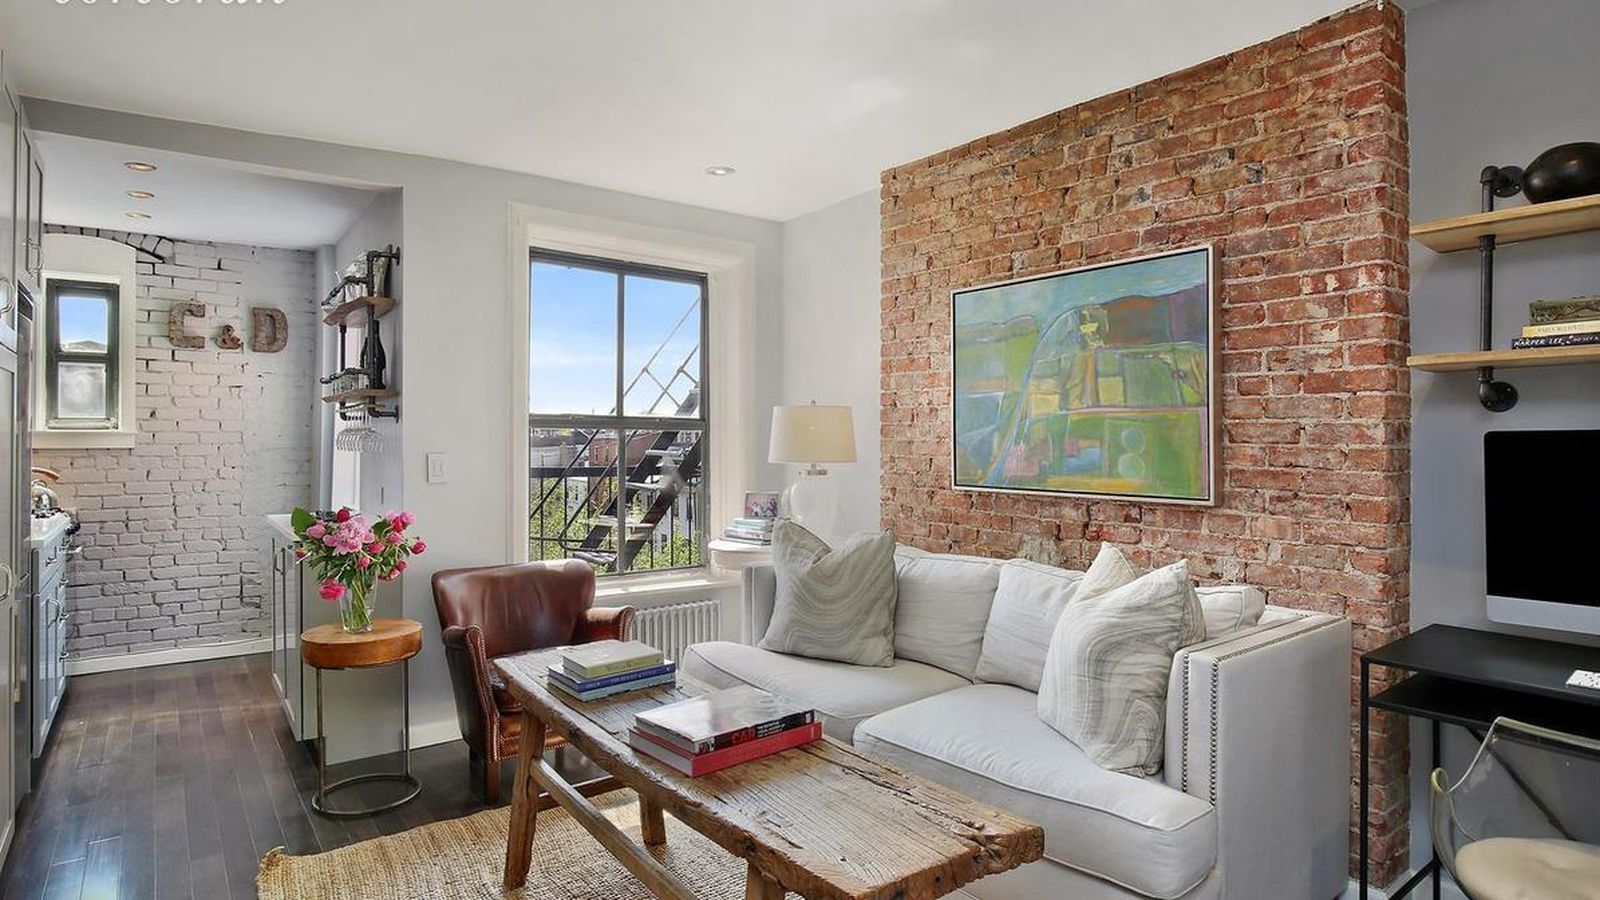 Rustic Chic Cobble Hill Condo With East River Views Wants 500k Curbed Ny